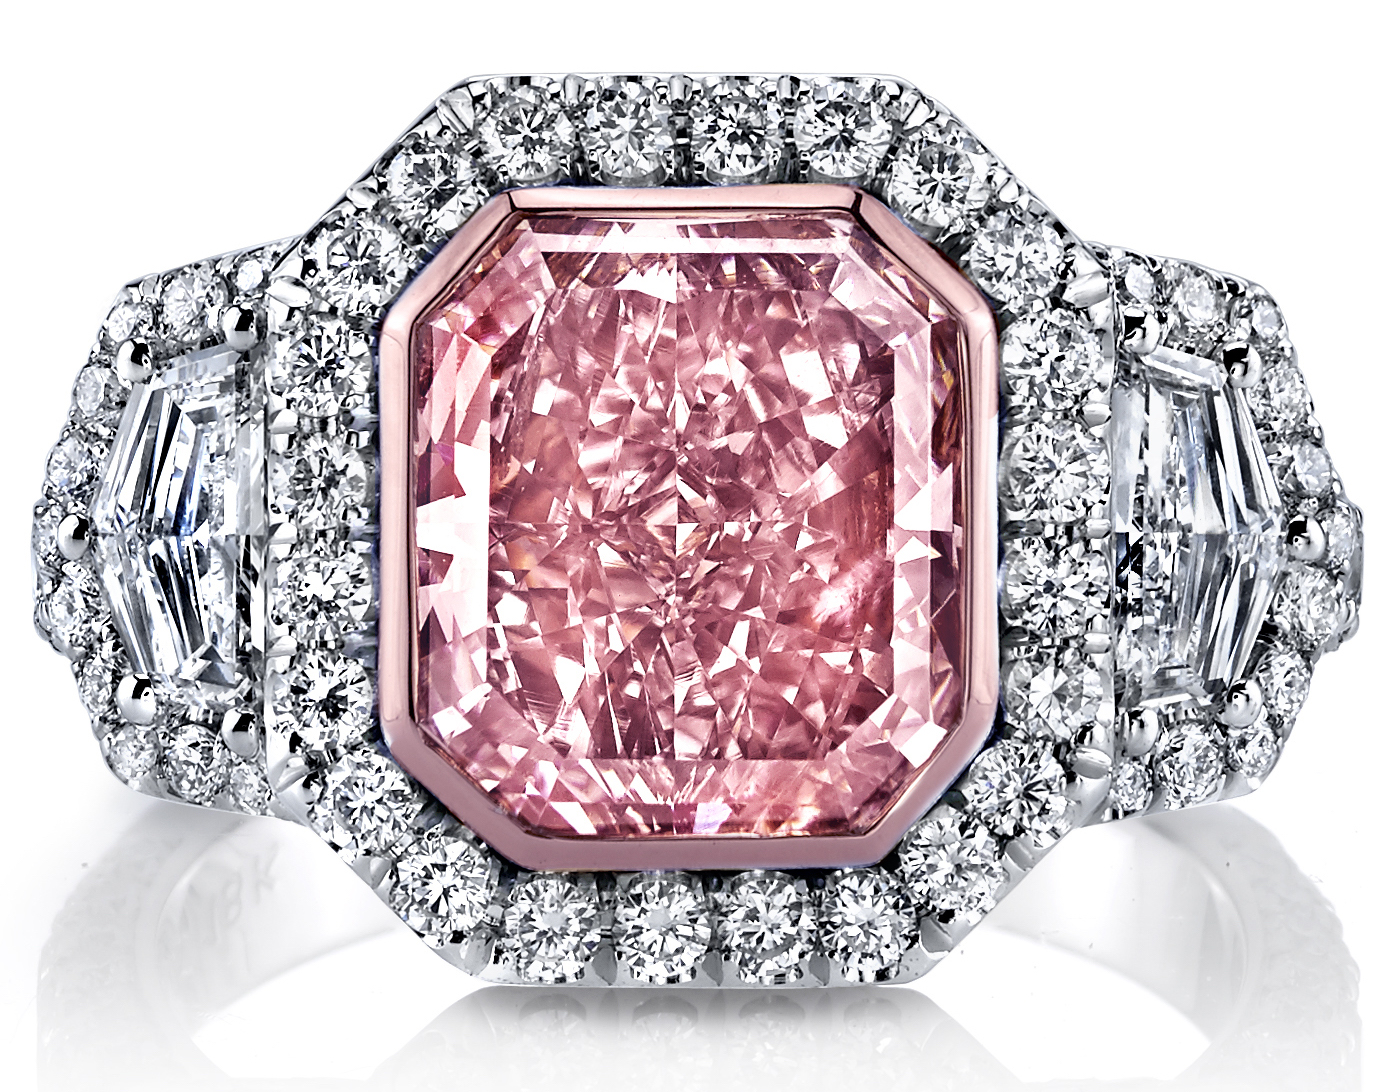 Joshua J radiant cut pink diamond ring | JCK On Your Market